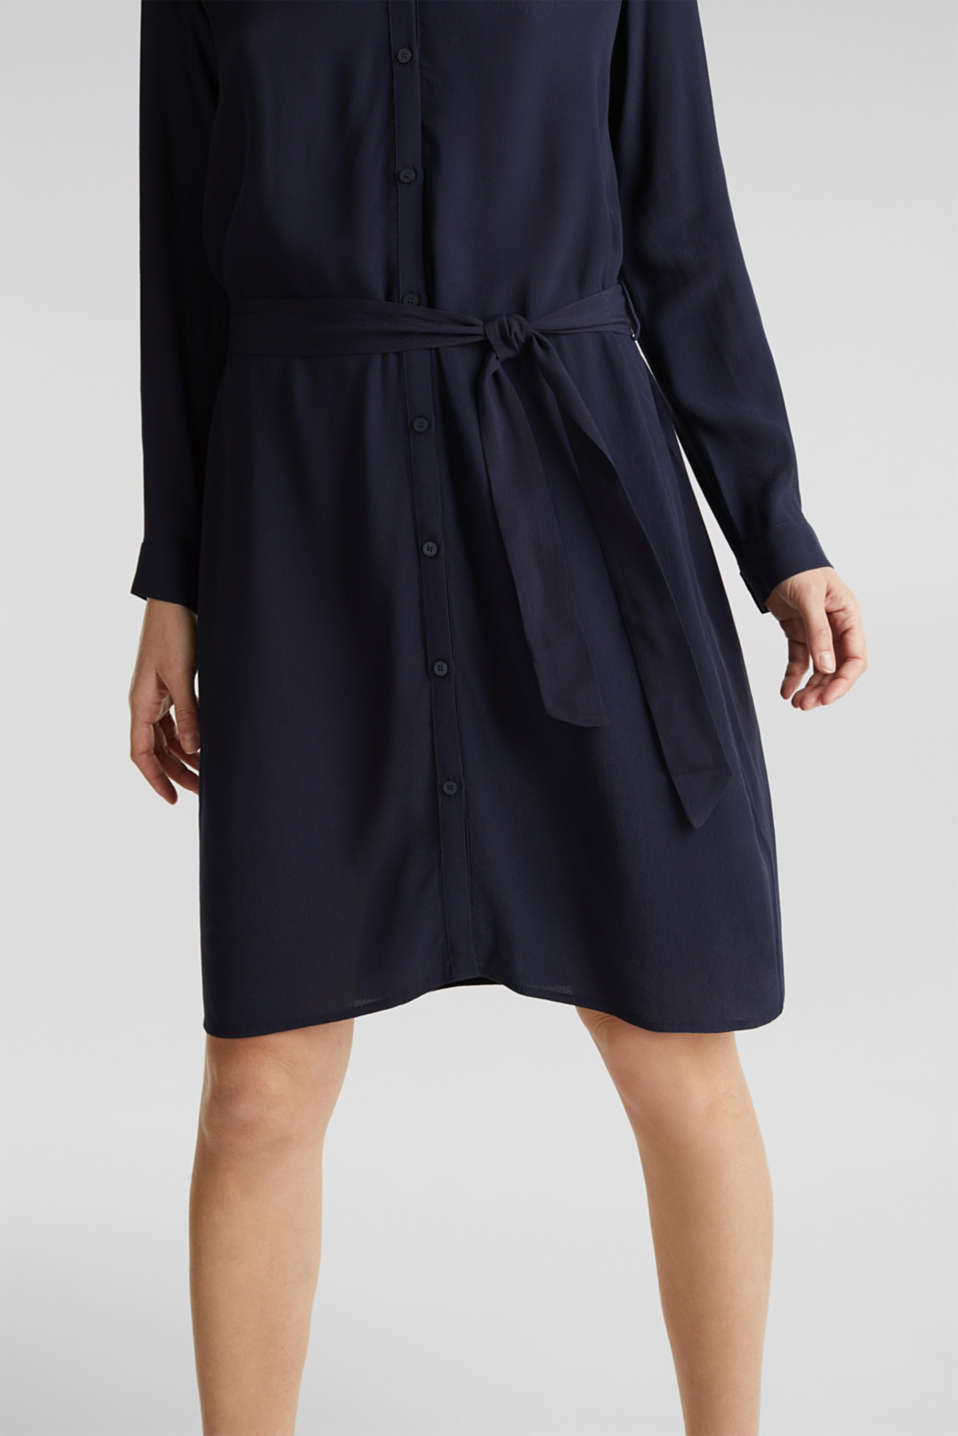 LENZING™ ECOVERO™ shirt dress, NAVY 3, detail image number 3